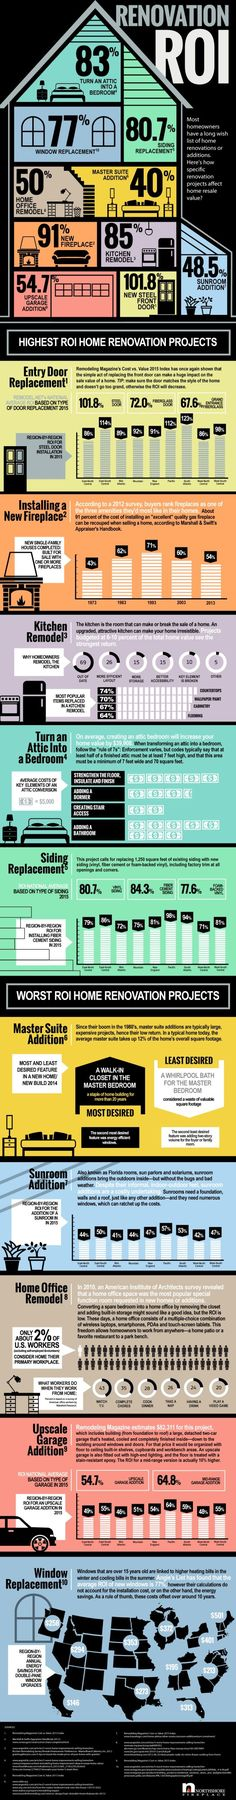 ROI - What Makes Sense for YOUR Home? If you're thinking about a home renovation, check this out to see what your return on investment might be!If you're thinking about a home renovation, check this out to see what your return on investment might be! Home Improvement Projects, Home Projects, Home Renovation, Home Remodeling, Remodeling Contractors, Kitchen Remodeling, Remodeling Costs, Bathroom Renovations, Fixer Upper